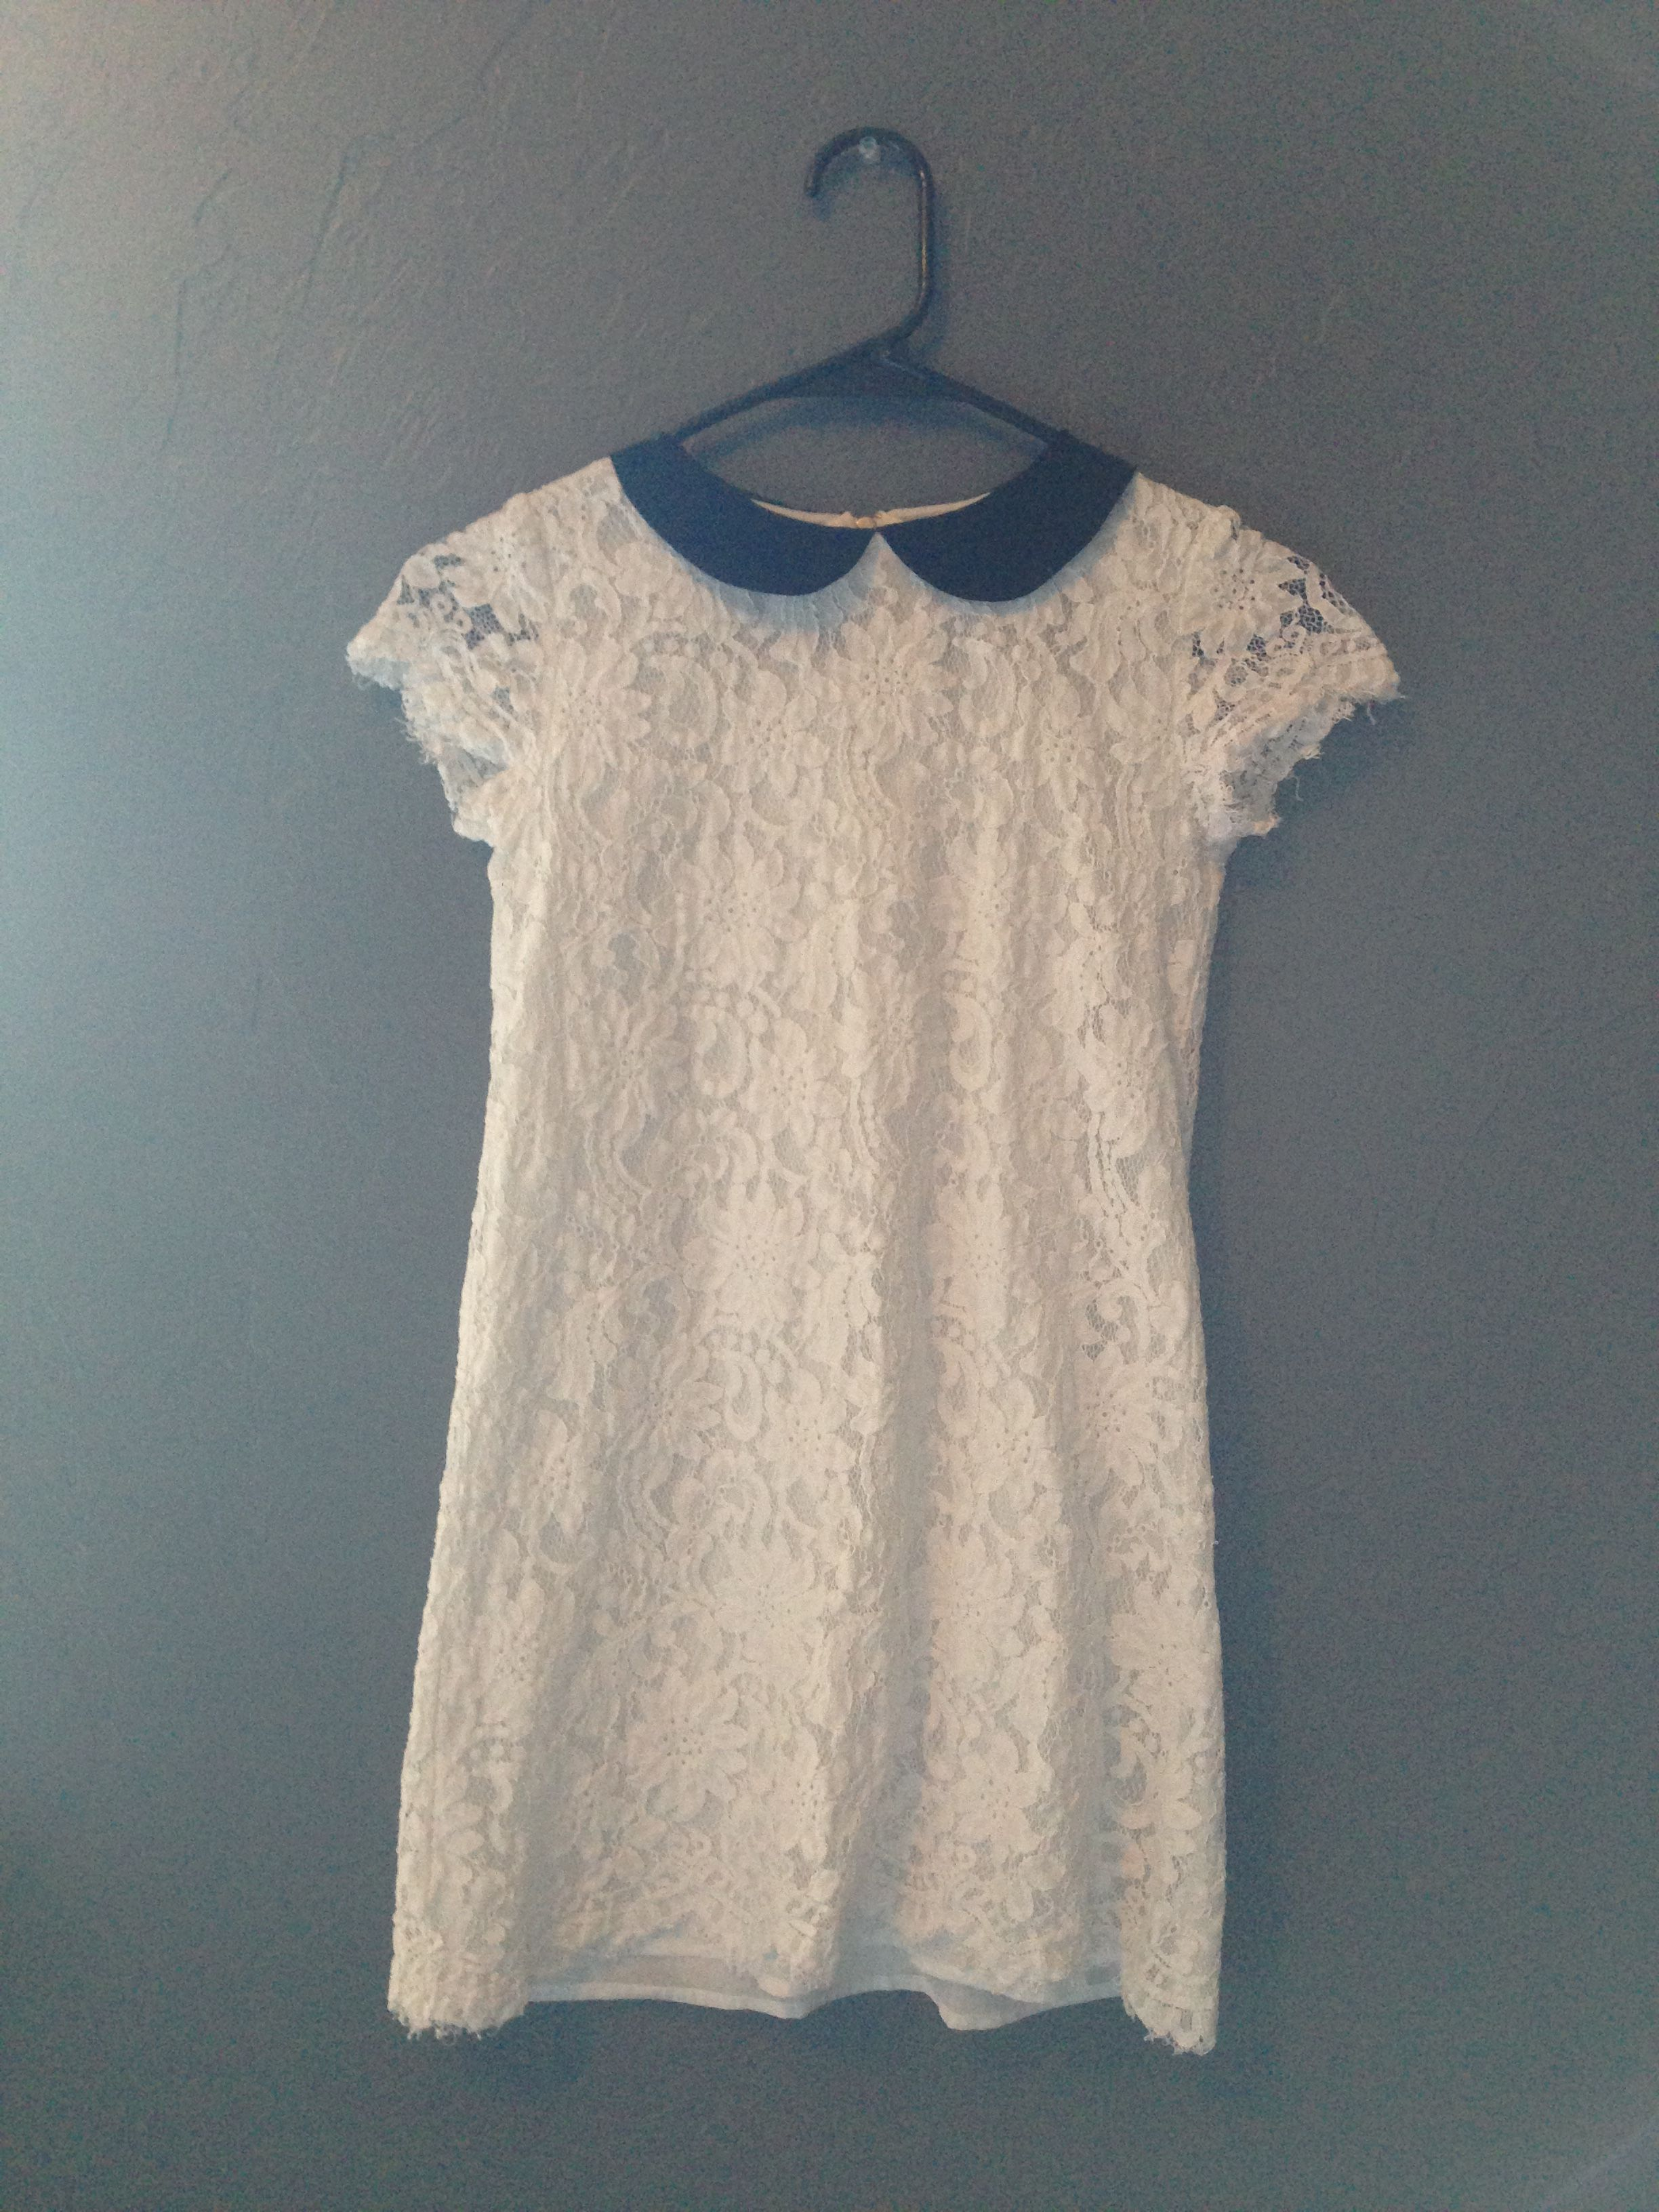 Thursday White Lace Dress with Black Collar from Forever 21